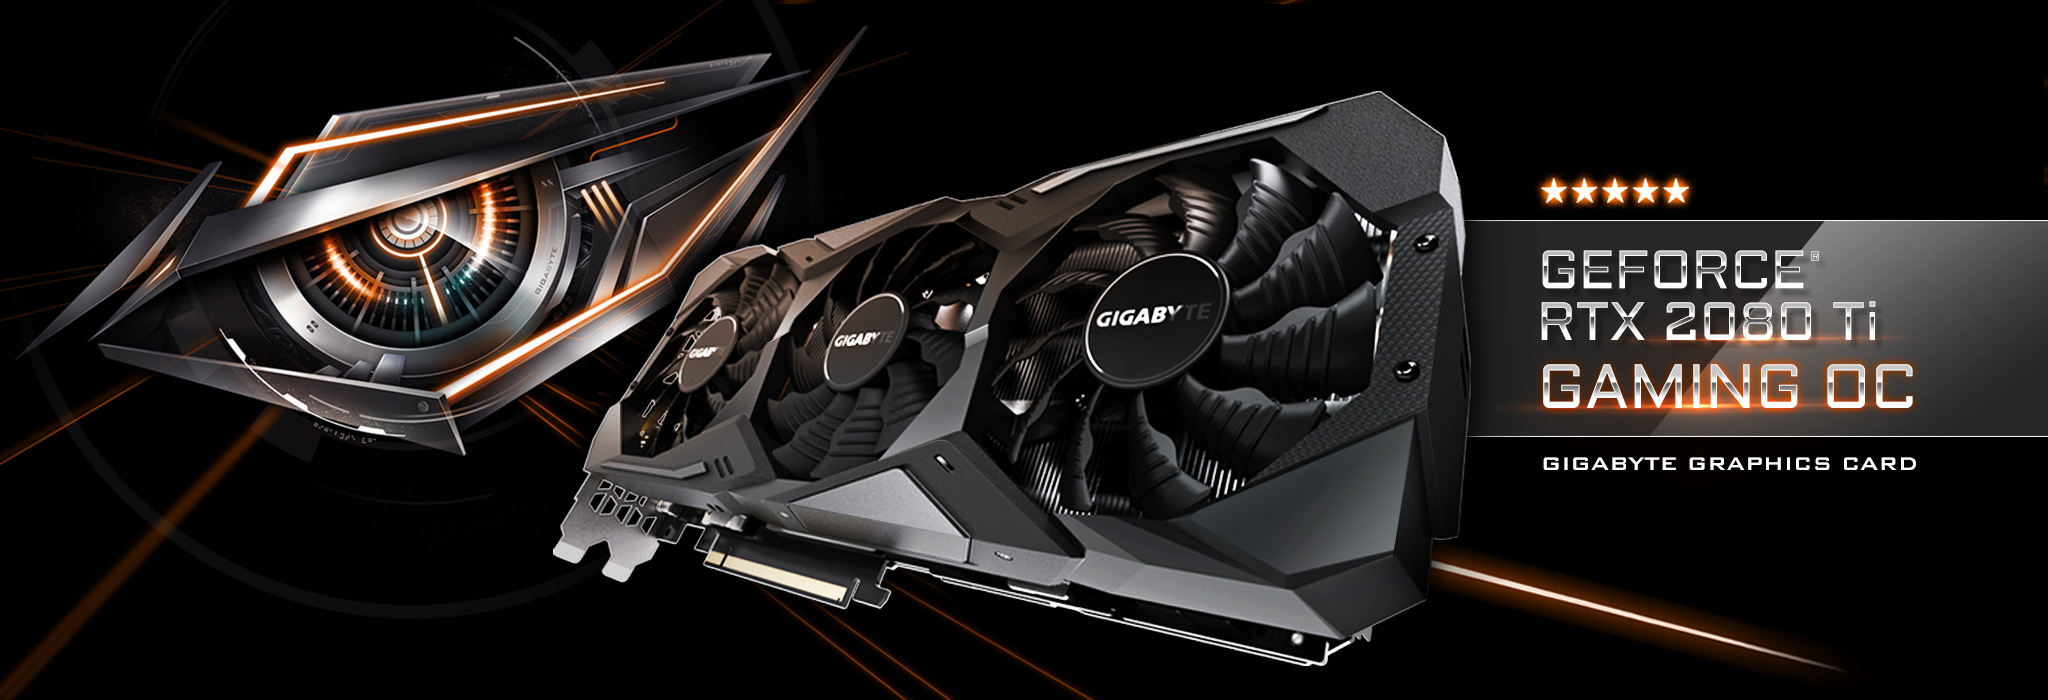 GeForce RTX™ 2080 Ti GAMING OC 11G | Graphics Card - GIGABYTE Global